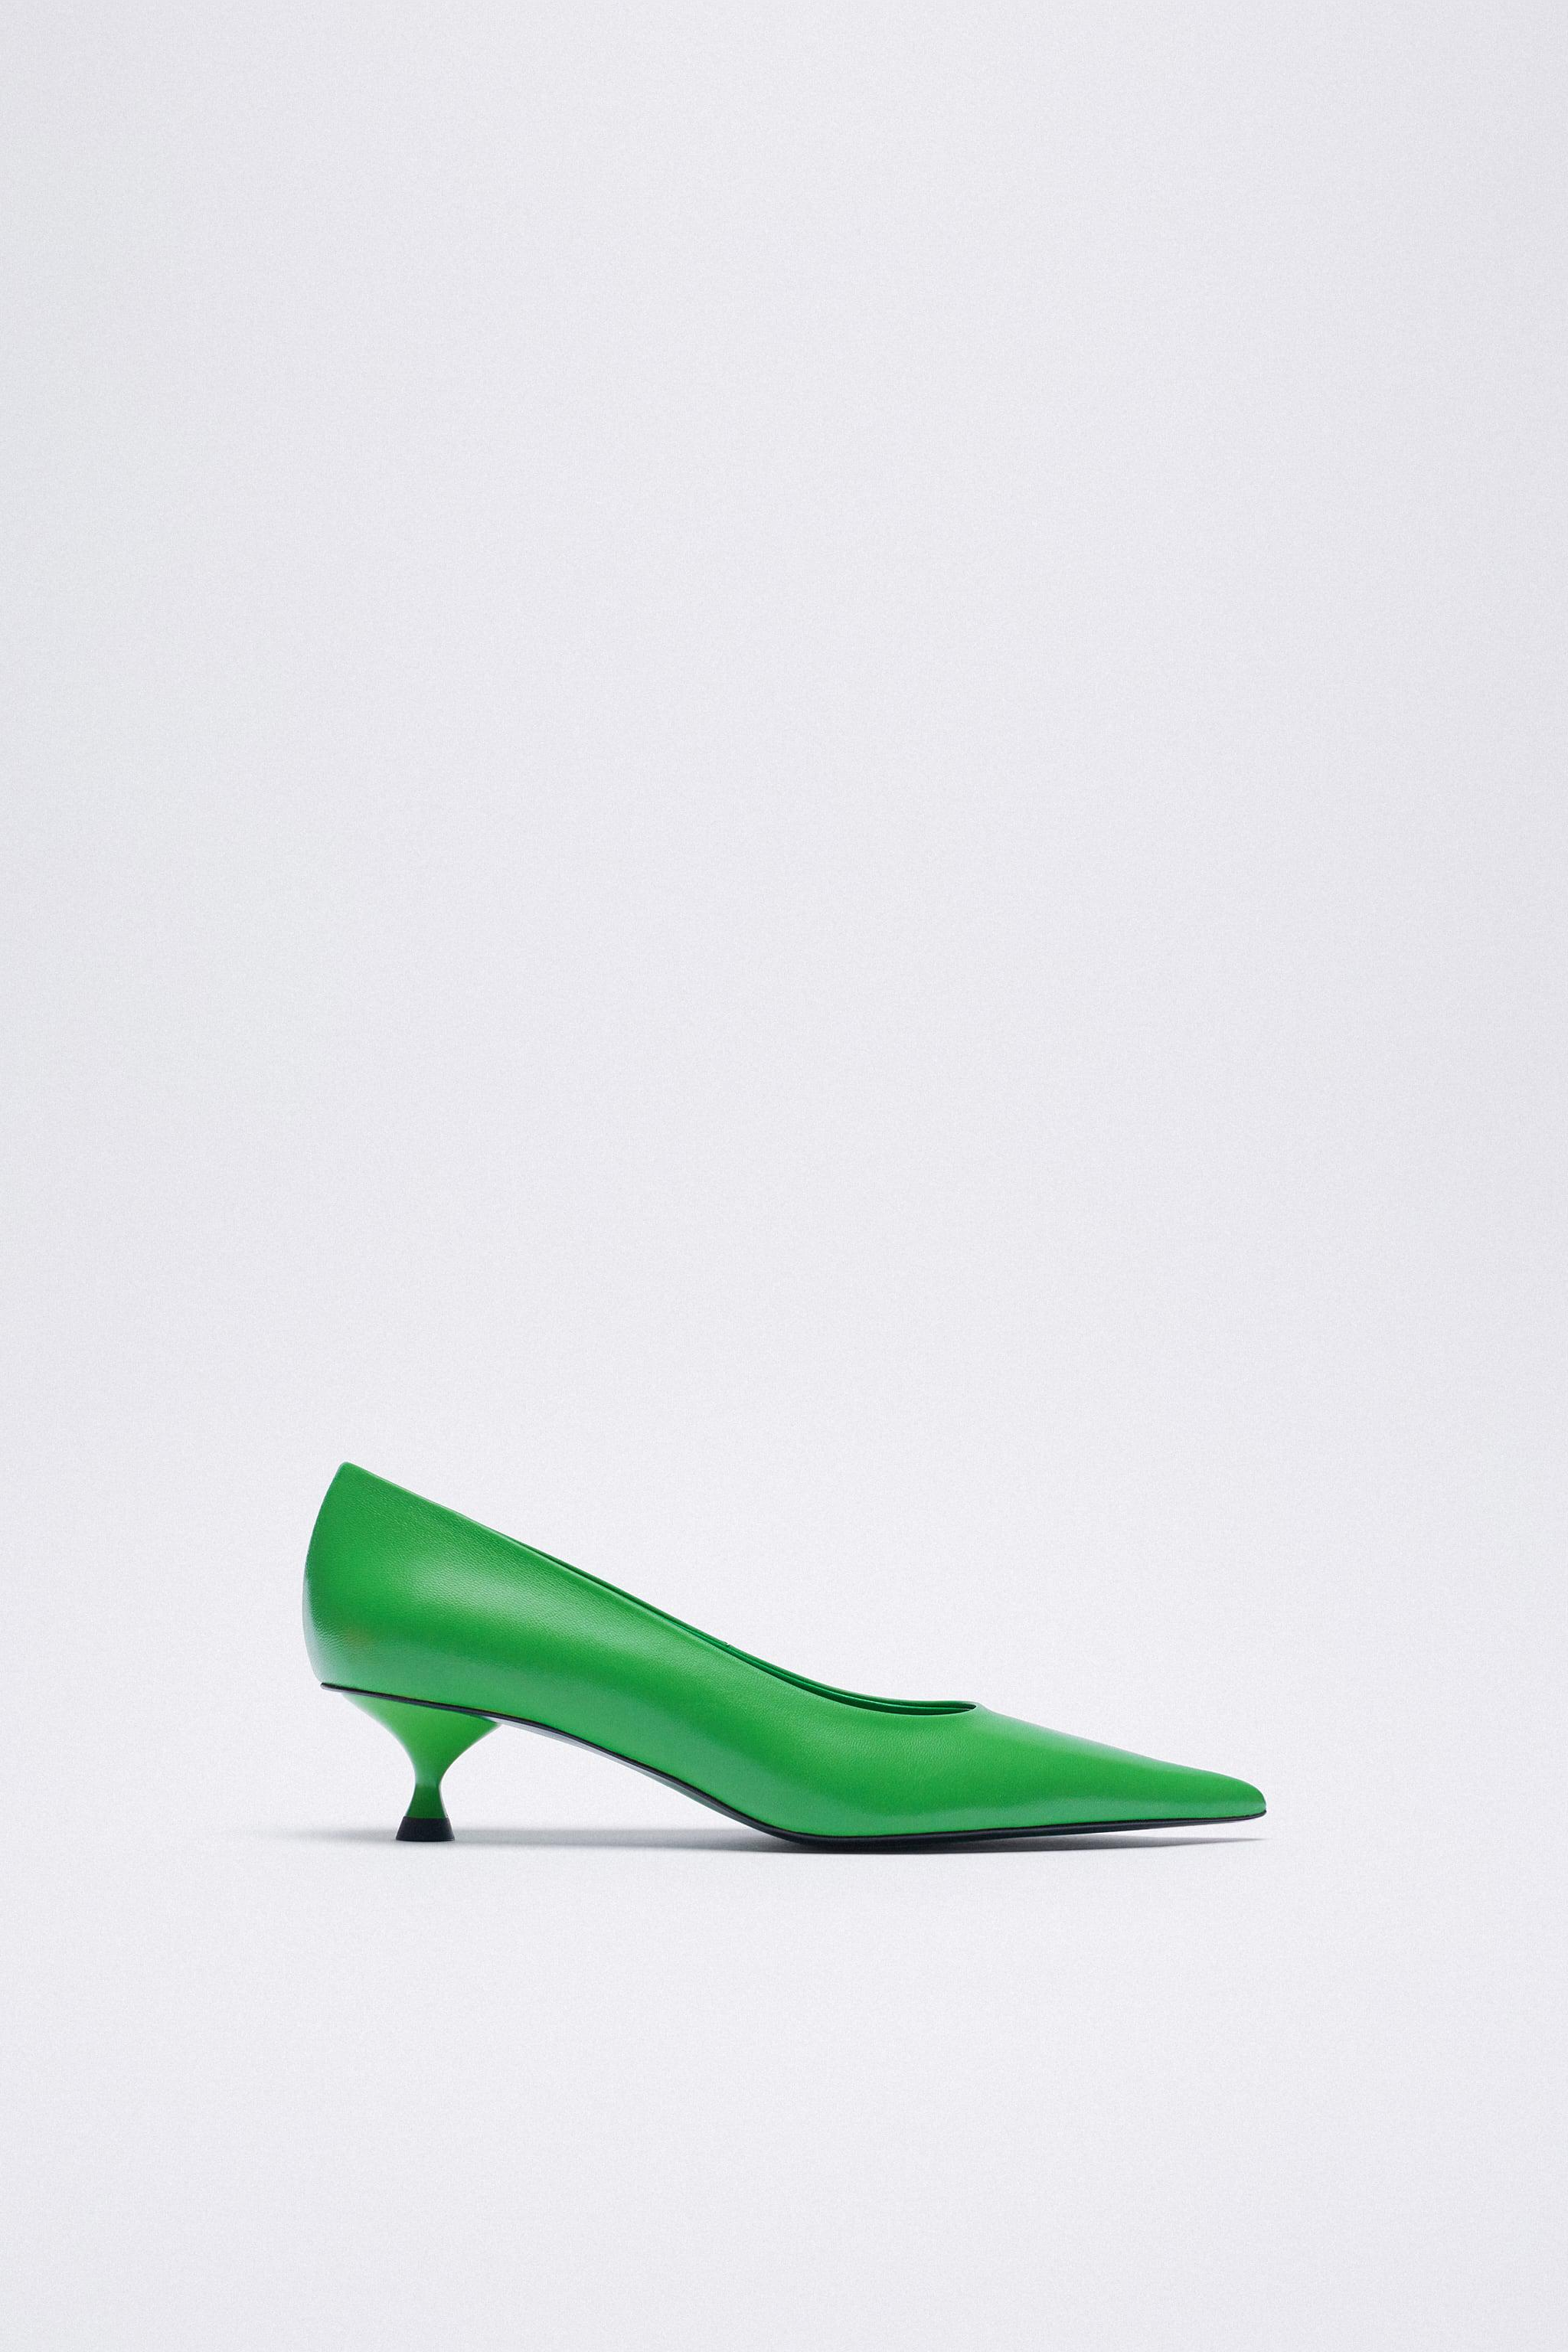 LEATHER HEELS WITH POINTED TOE 6